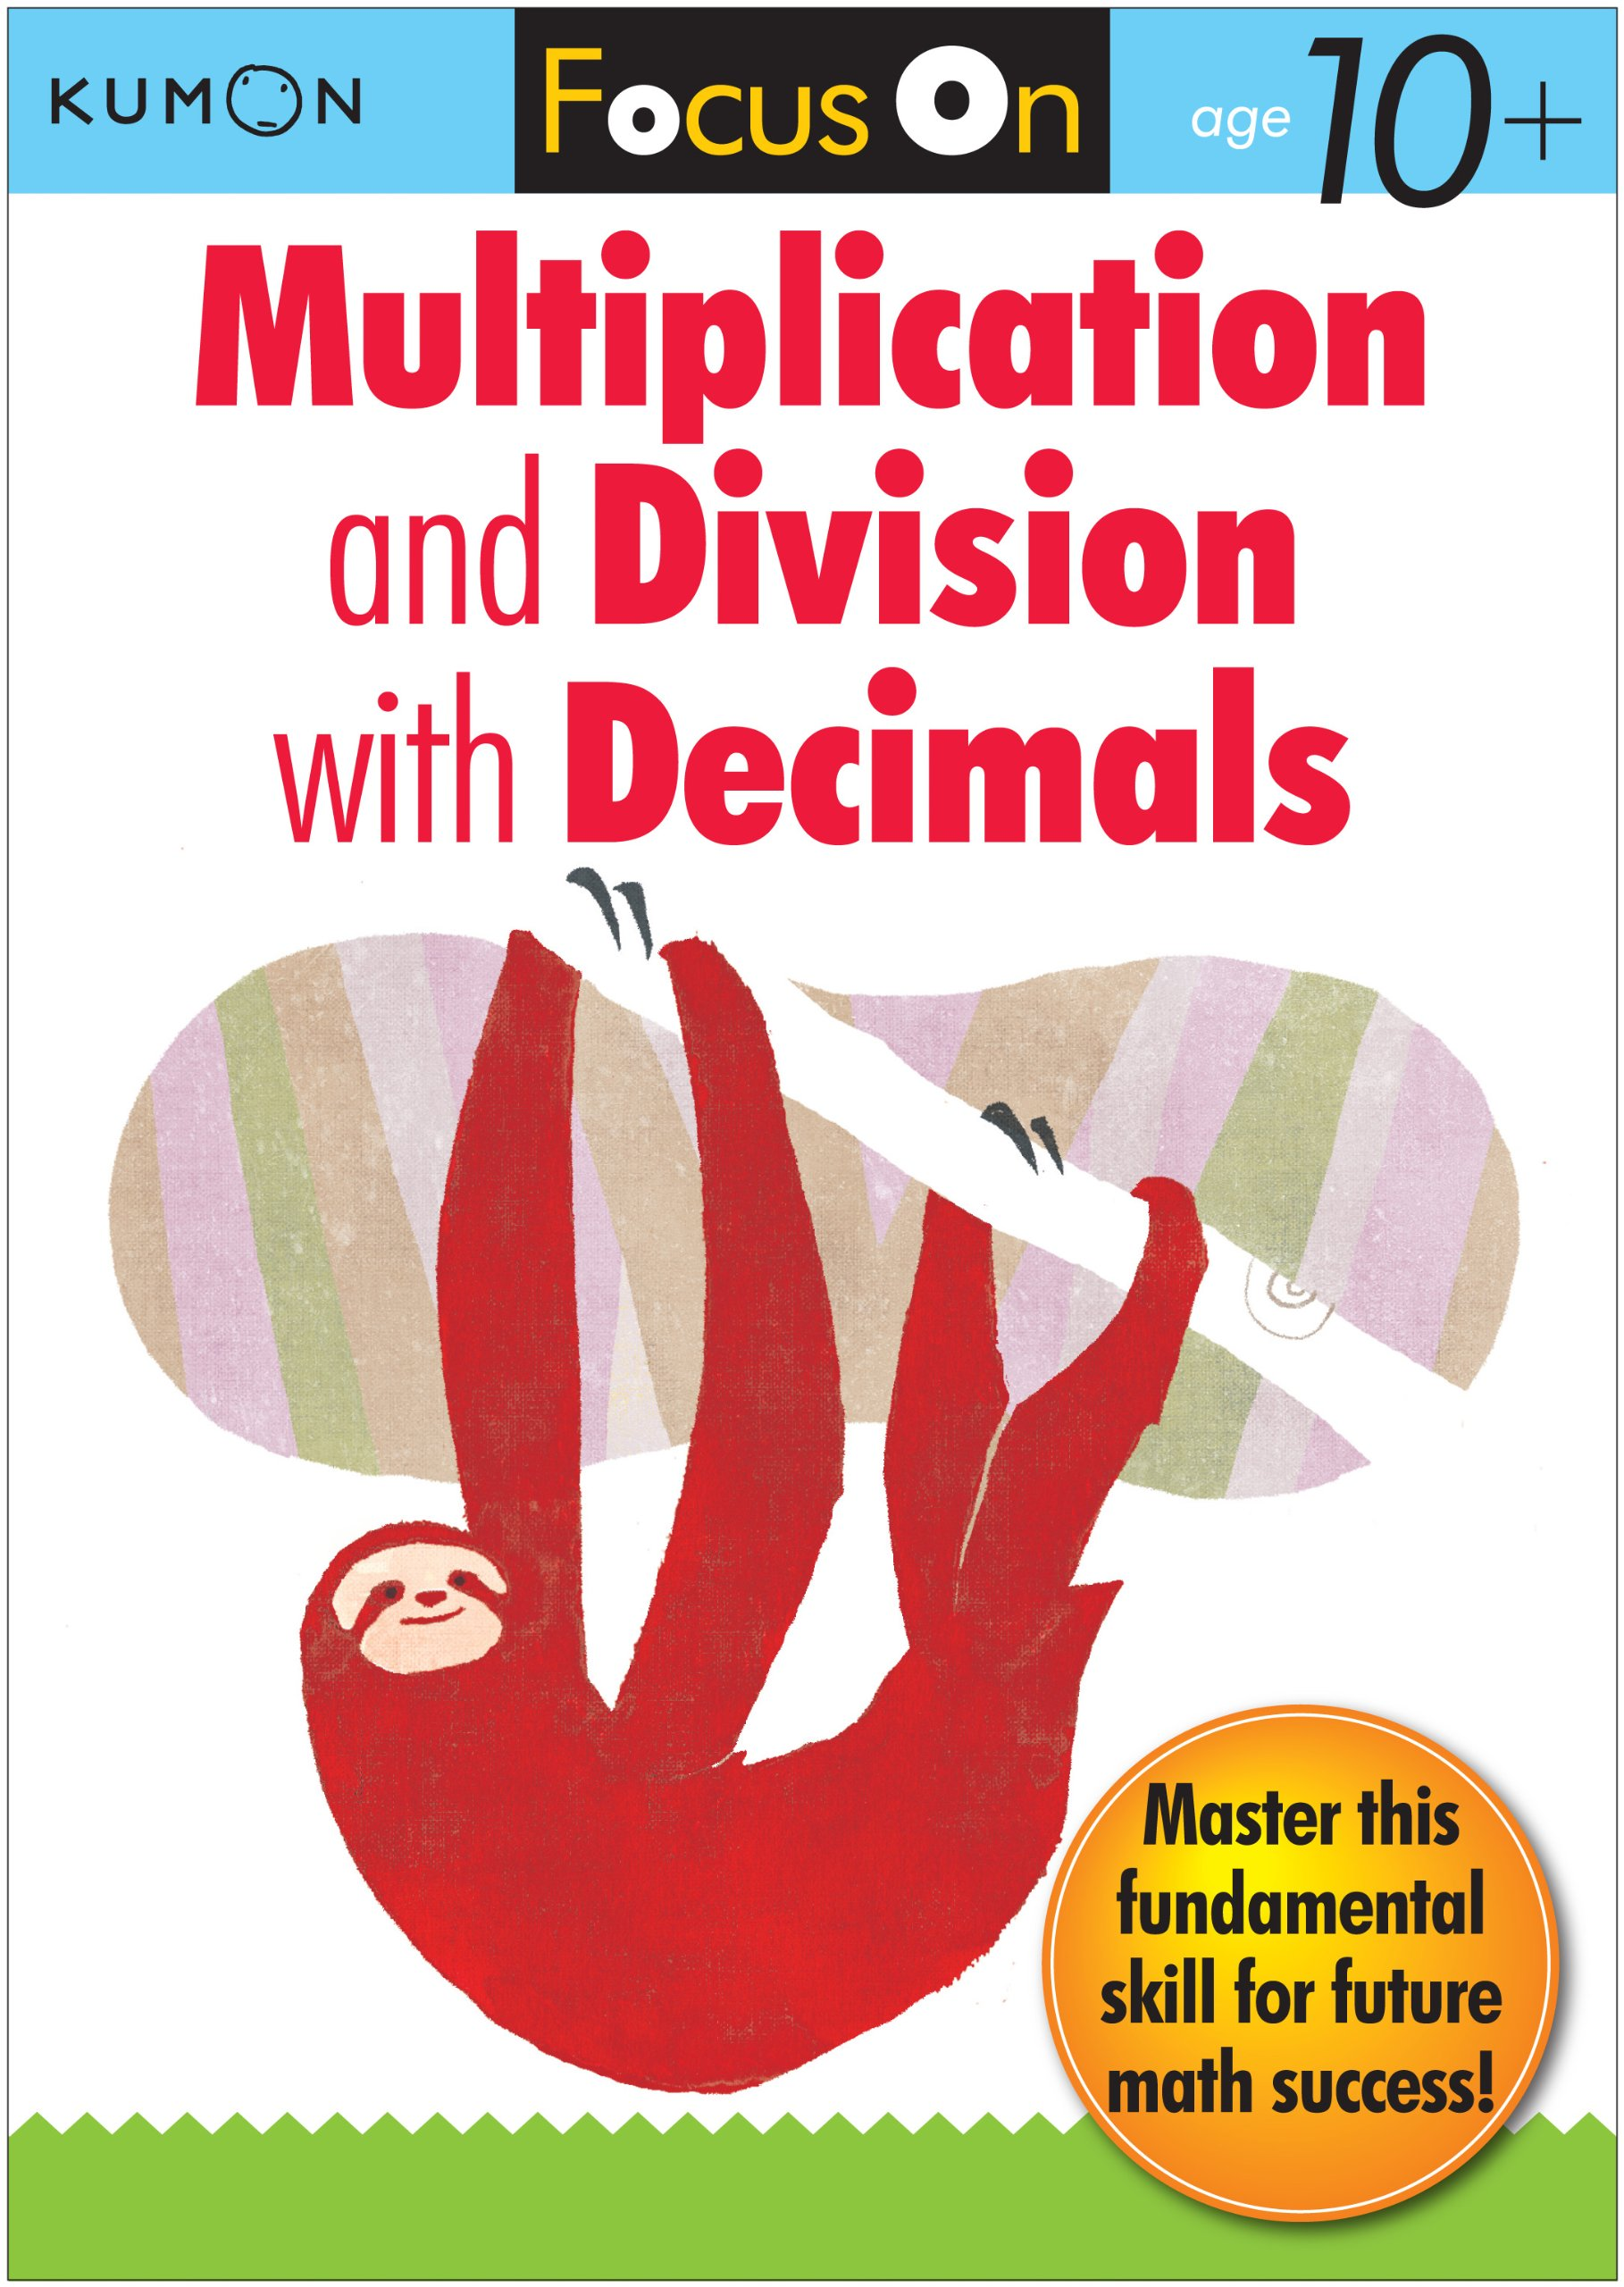 kumon focus on: multiplication and division with decimals - ziggies